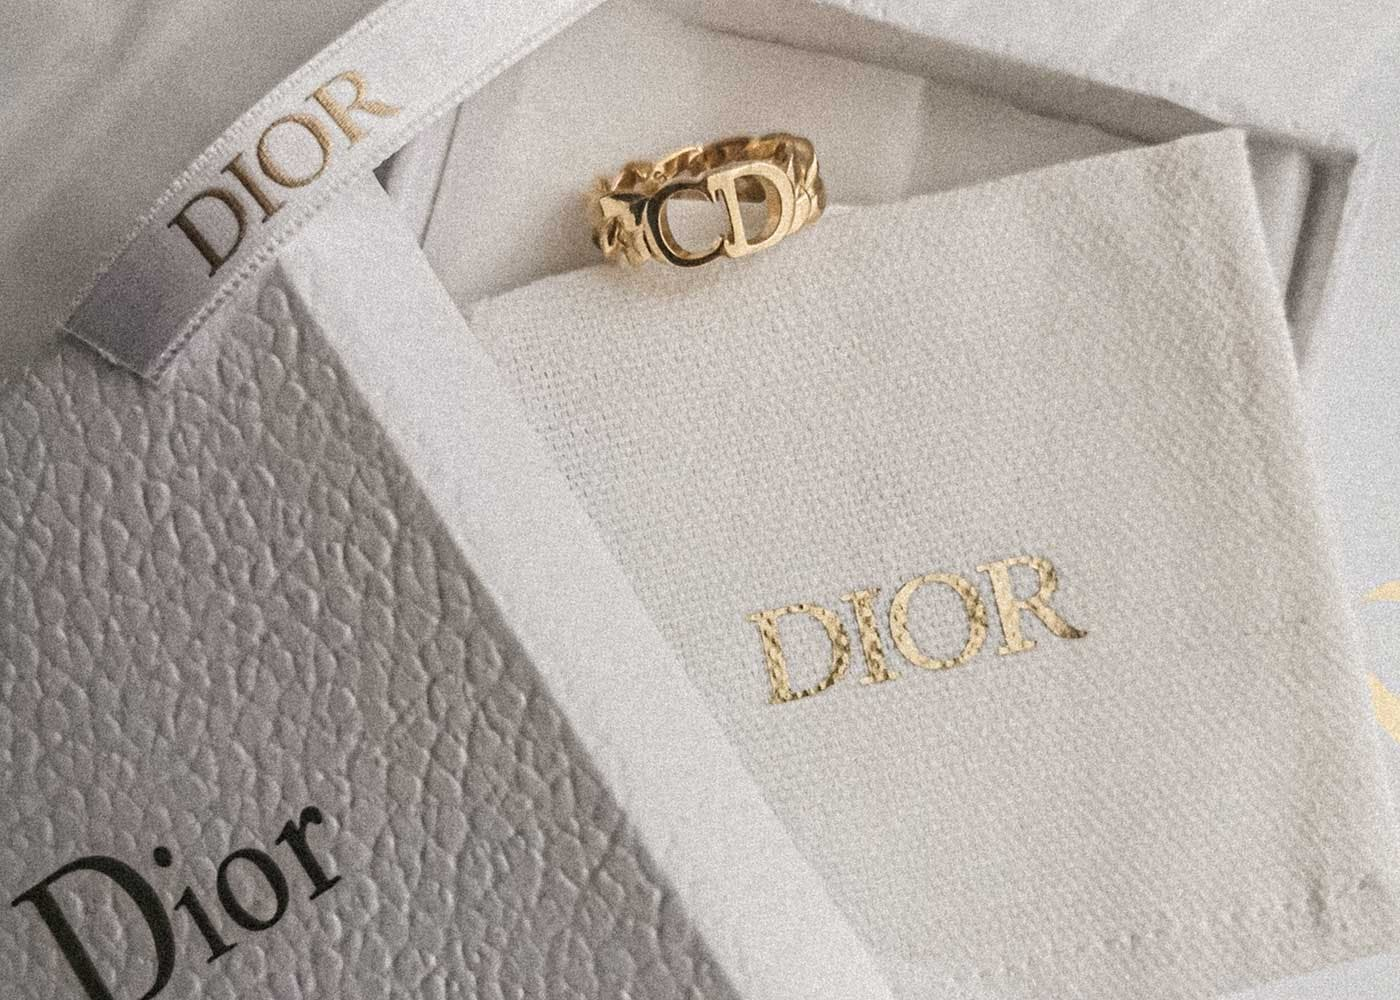 Dior jewelry box and ring